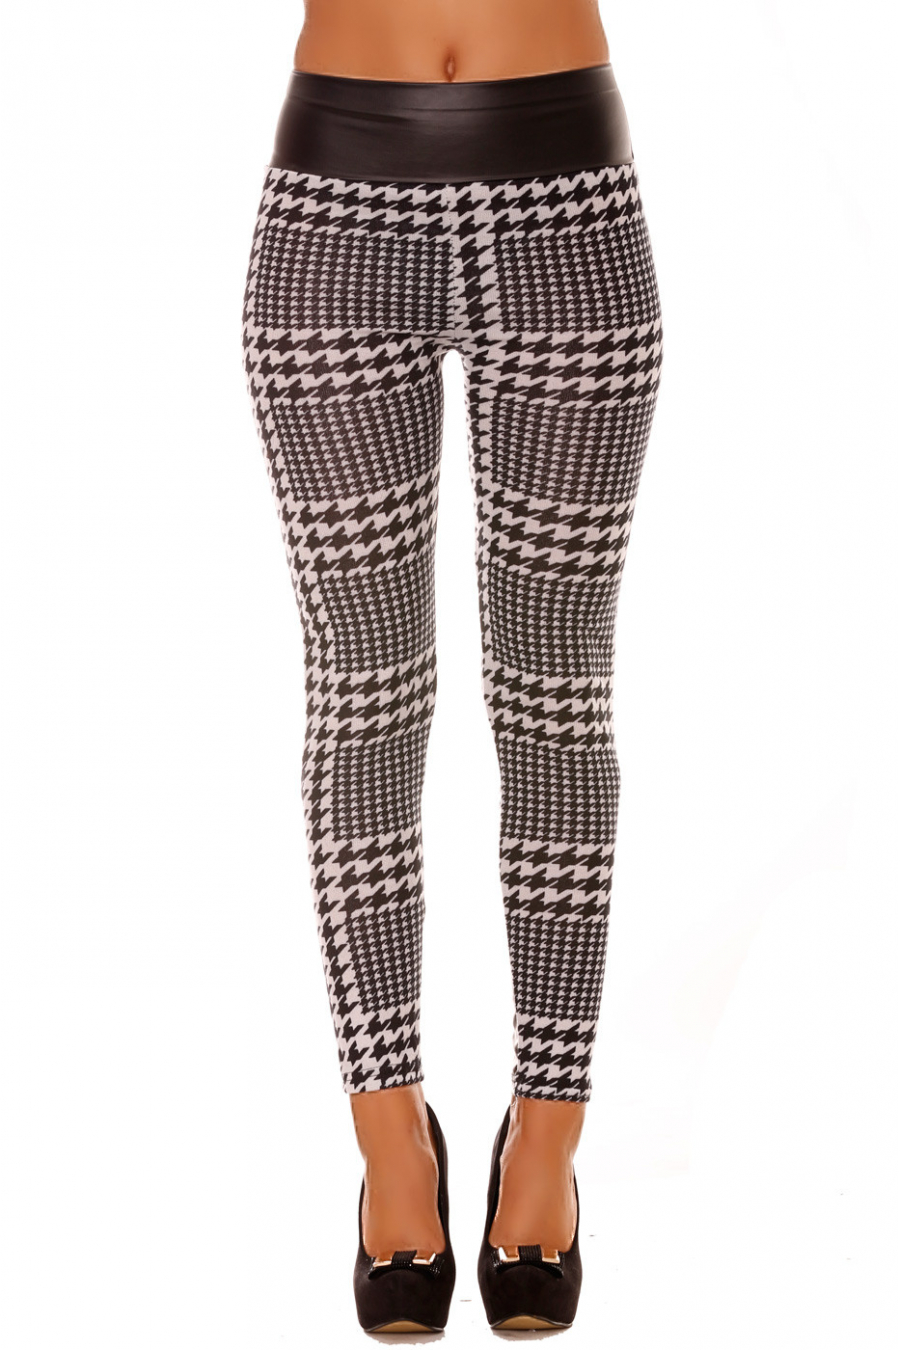 Black and white winter leggings, houndstooth and sky patterns on the back. Cheap Leggings. 152